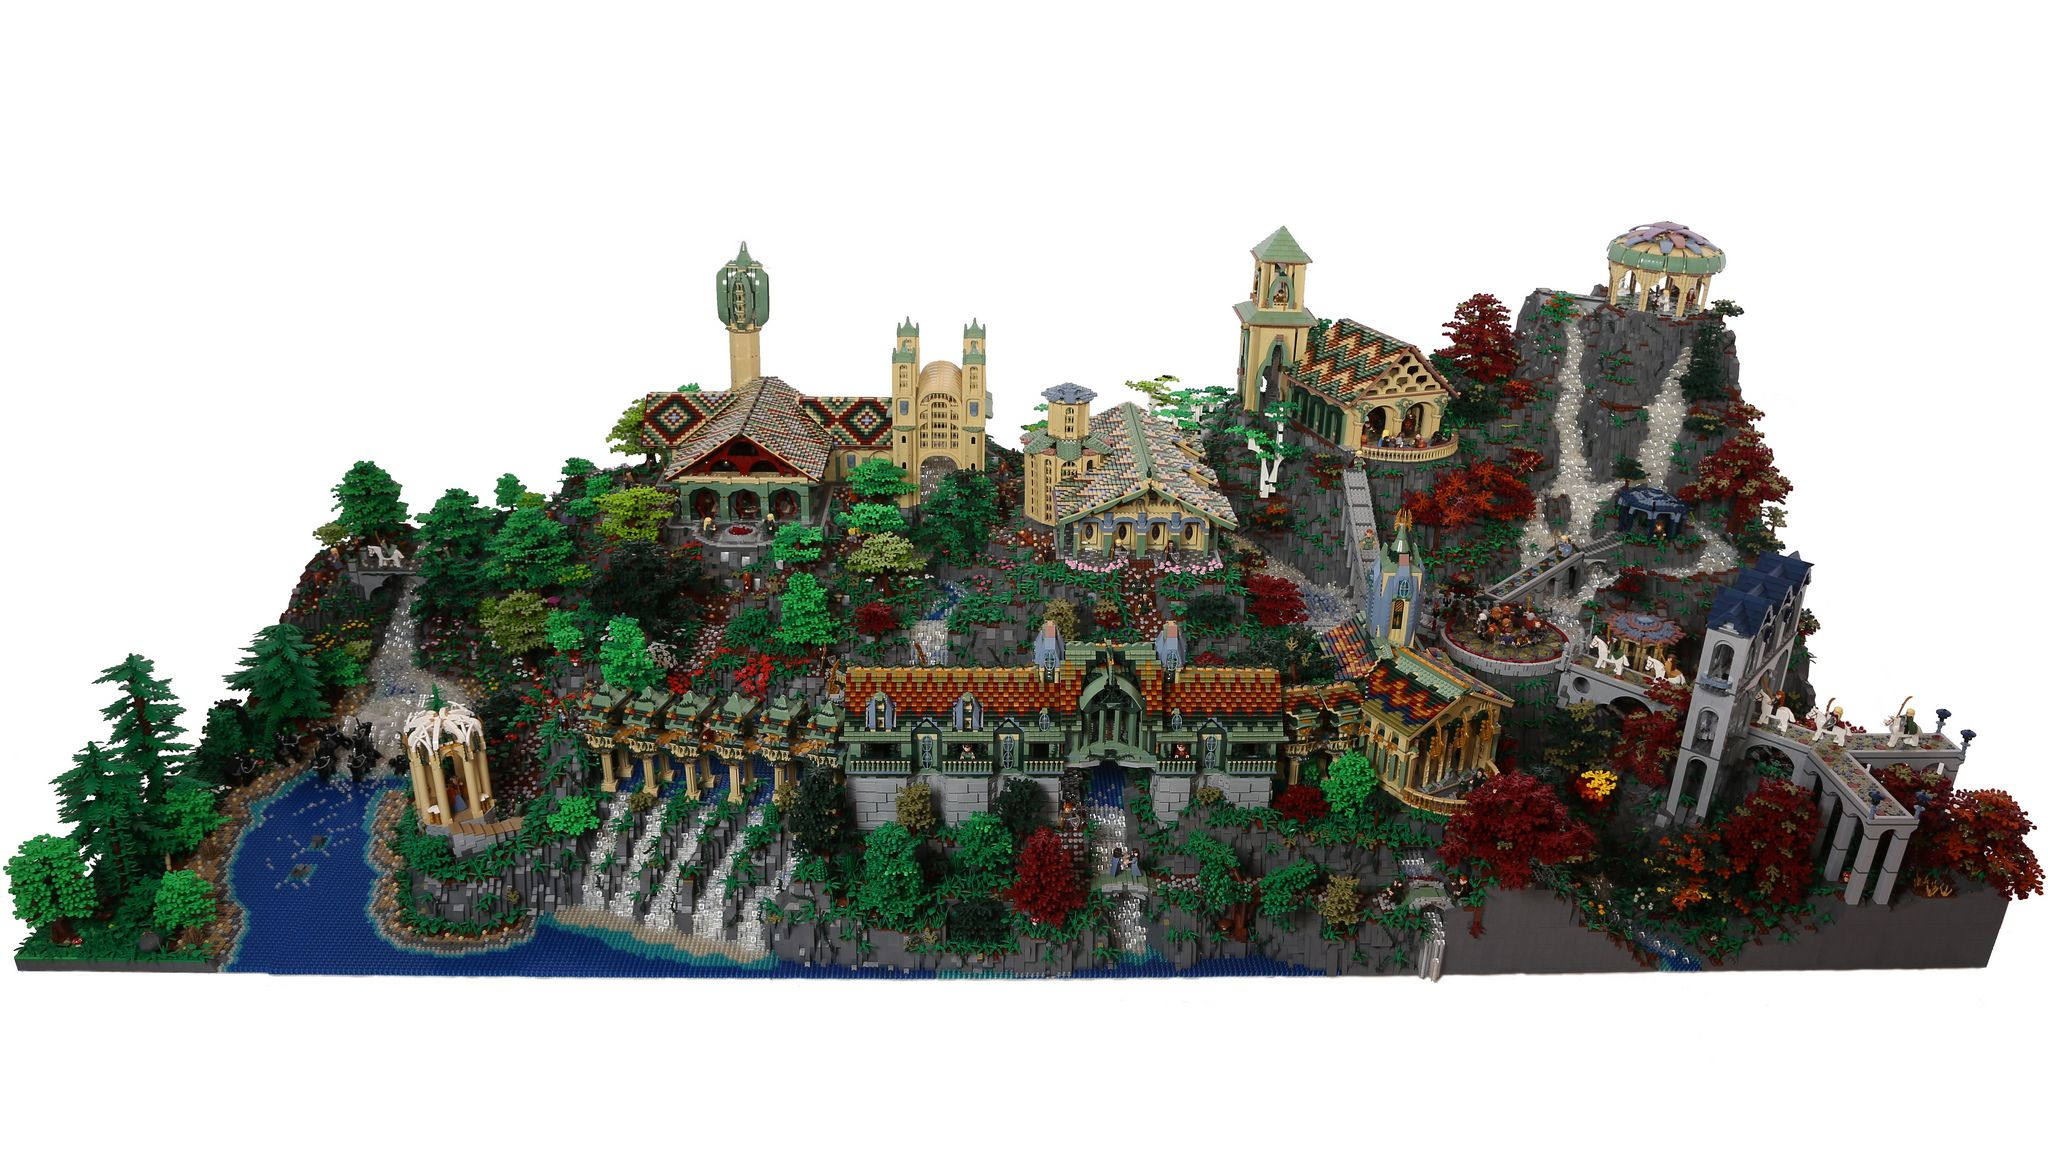 lego lord of the rings - photo #11